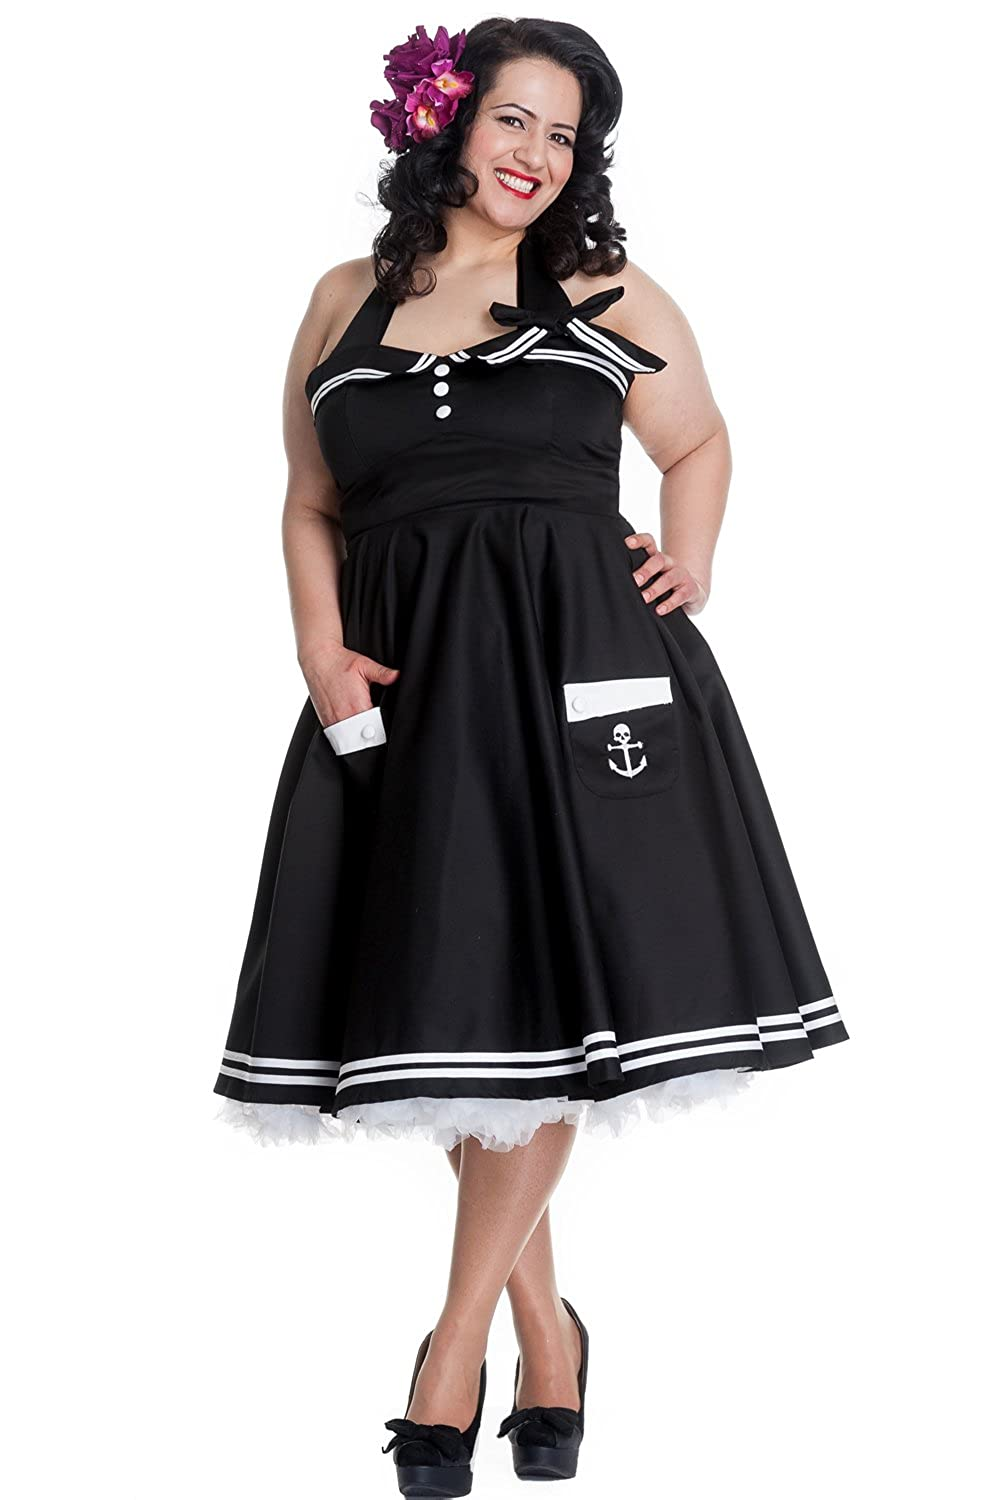 1950s Fashion History: Women's Clothing Hell Bunny Plus Size 60s Motley Pinup Vintage Halter Sailor Black Swing Dress $92.50 AT vintagedancer.com